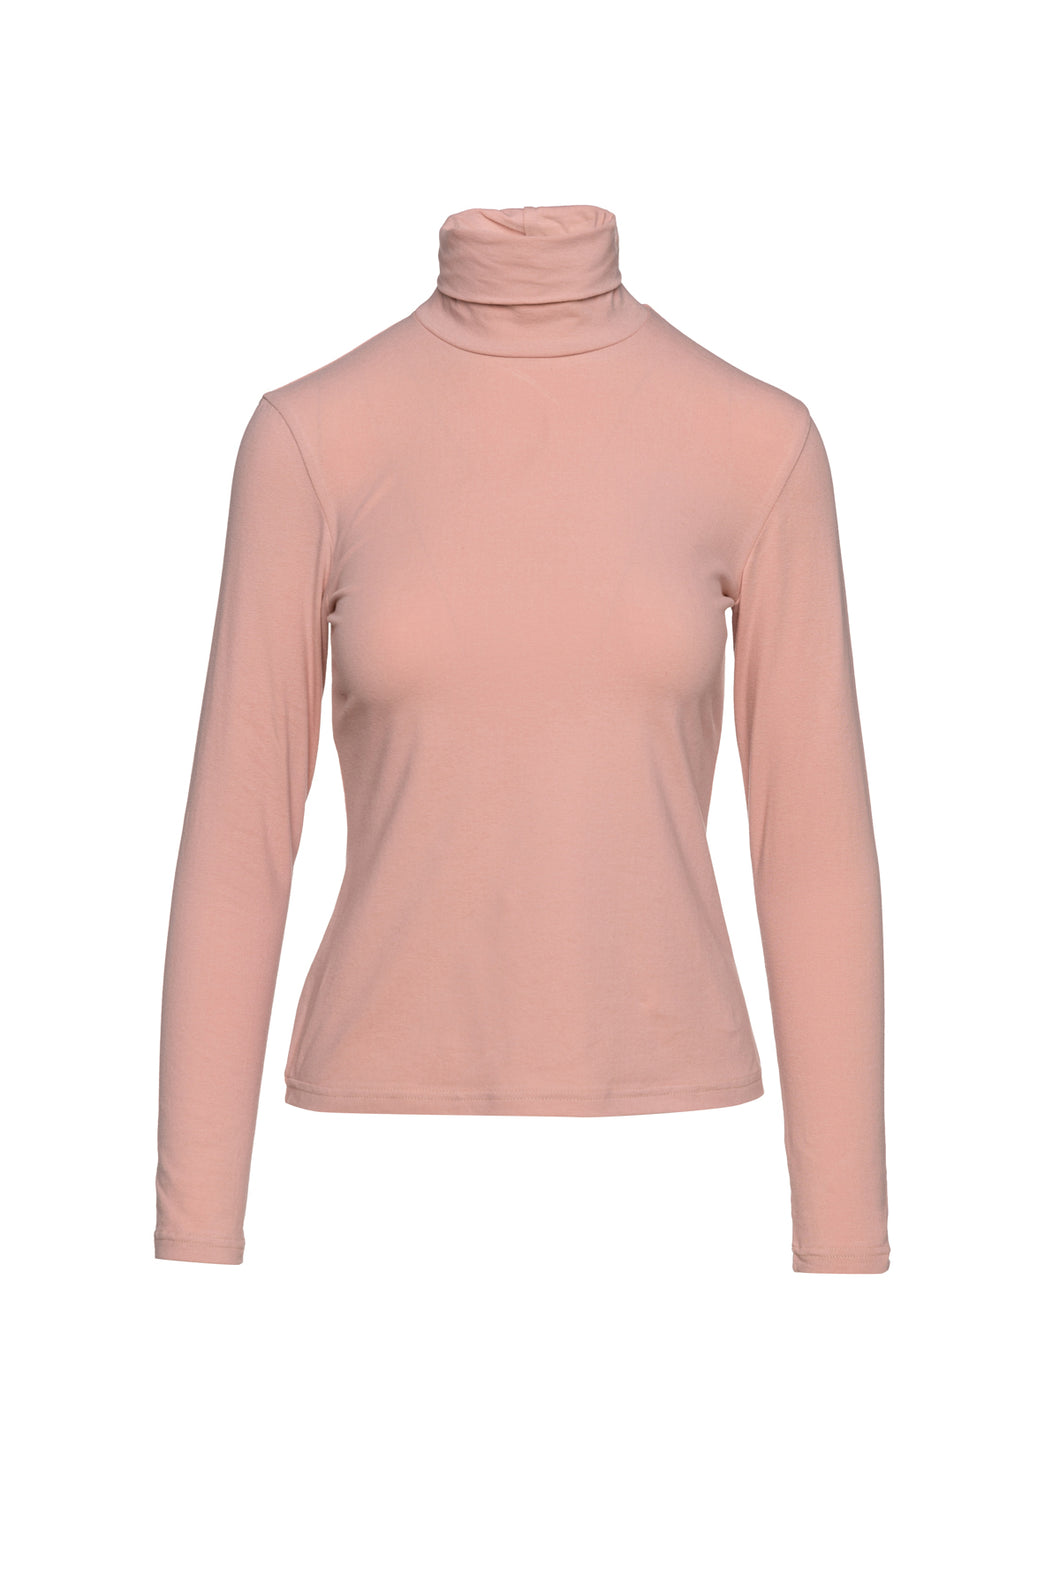 Salmon Turtle Neck Top By Conquista in Sustainable Fabric